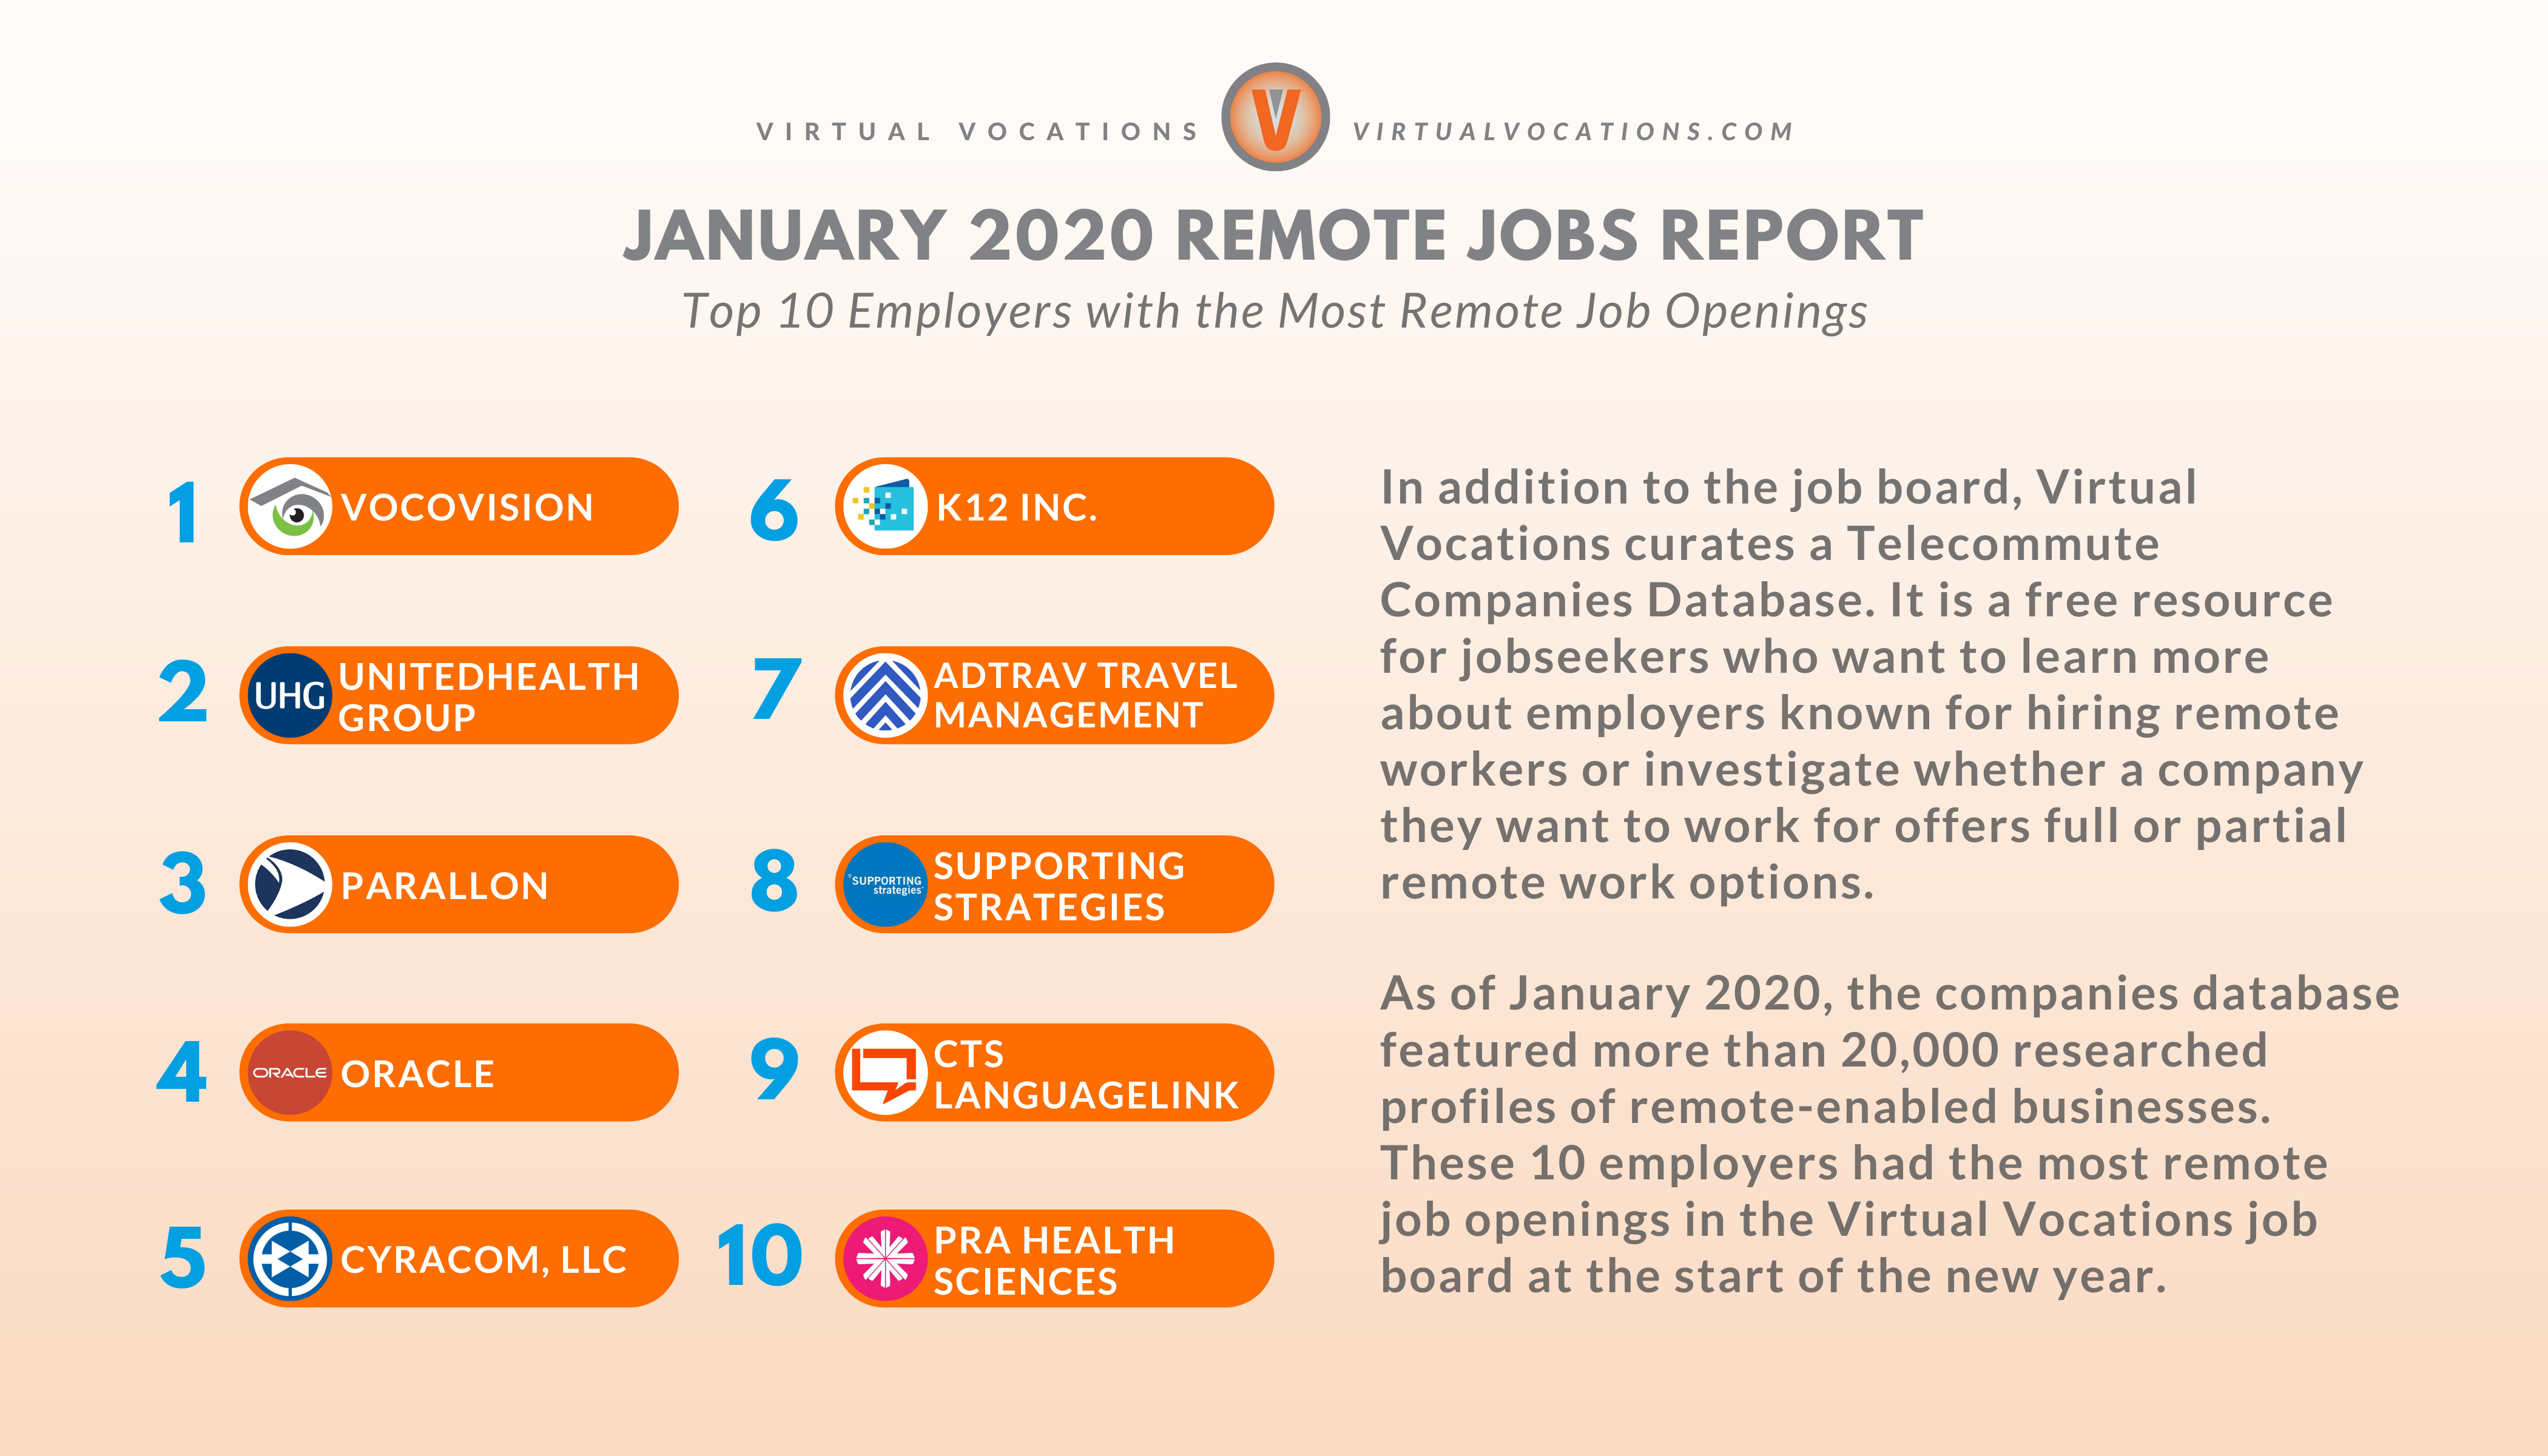 Top 10 Employers with the Most Remote Job Openings - January 2020 remote jobs report - Virtual Vocations